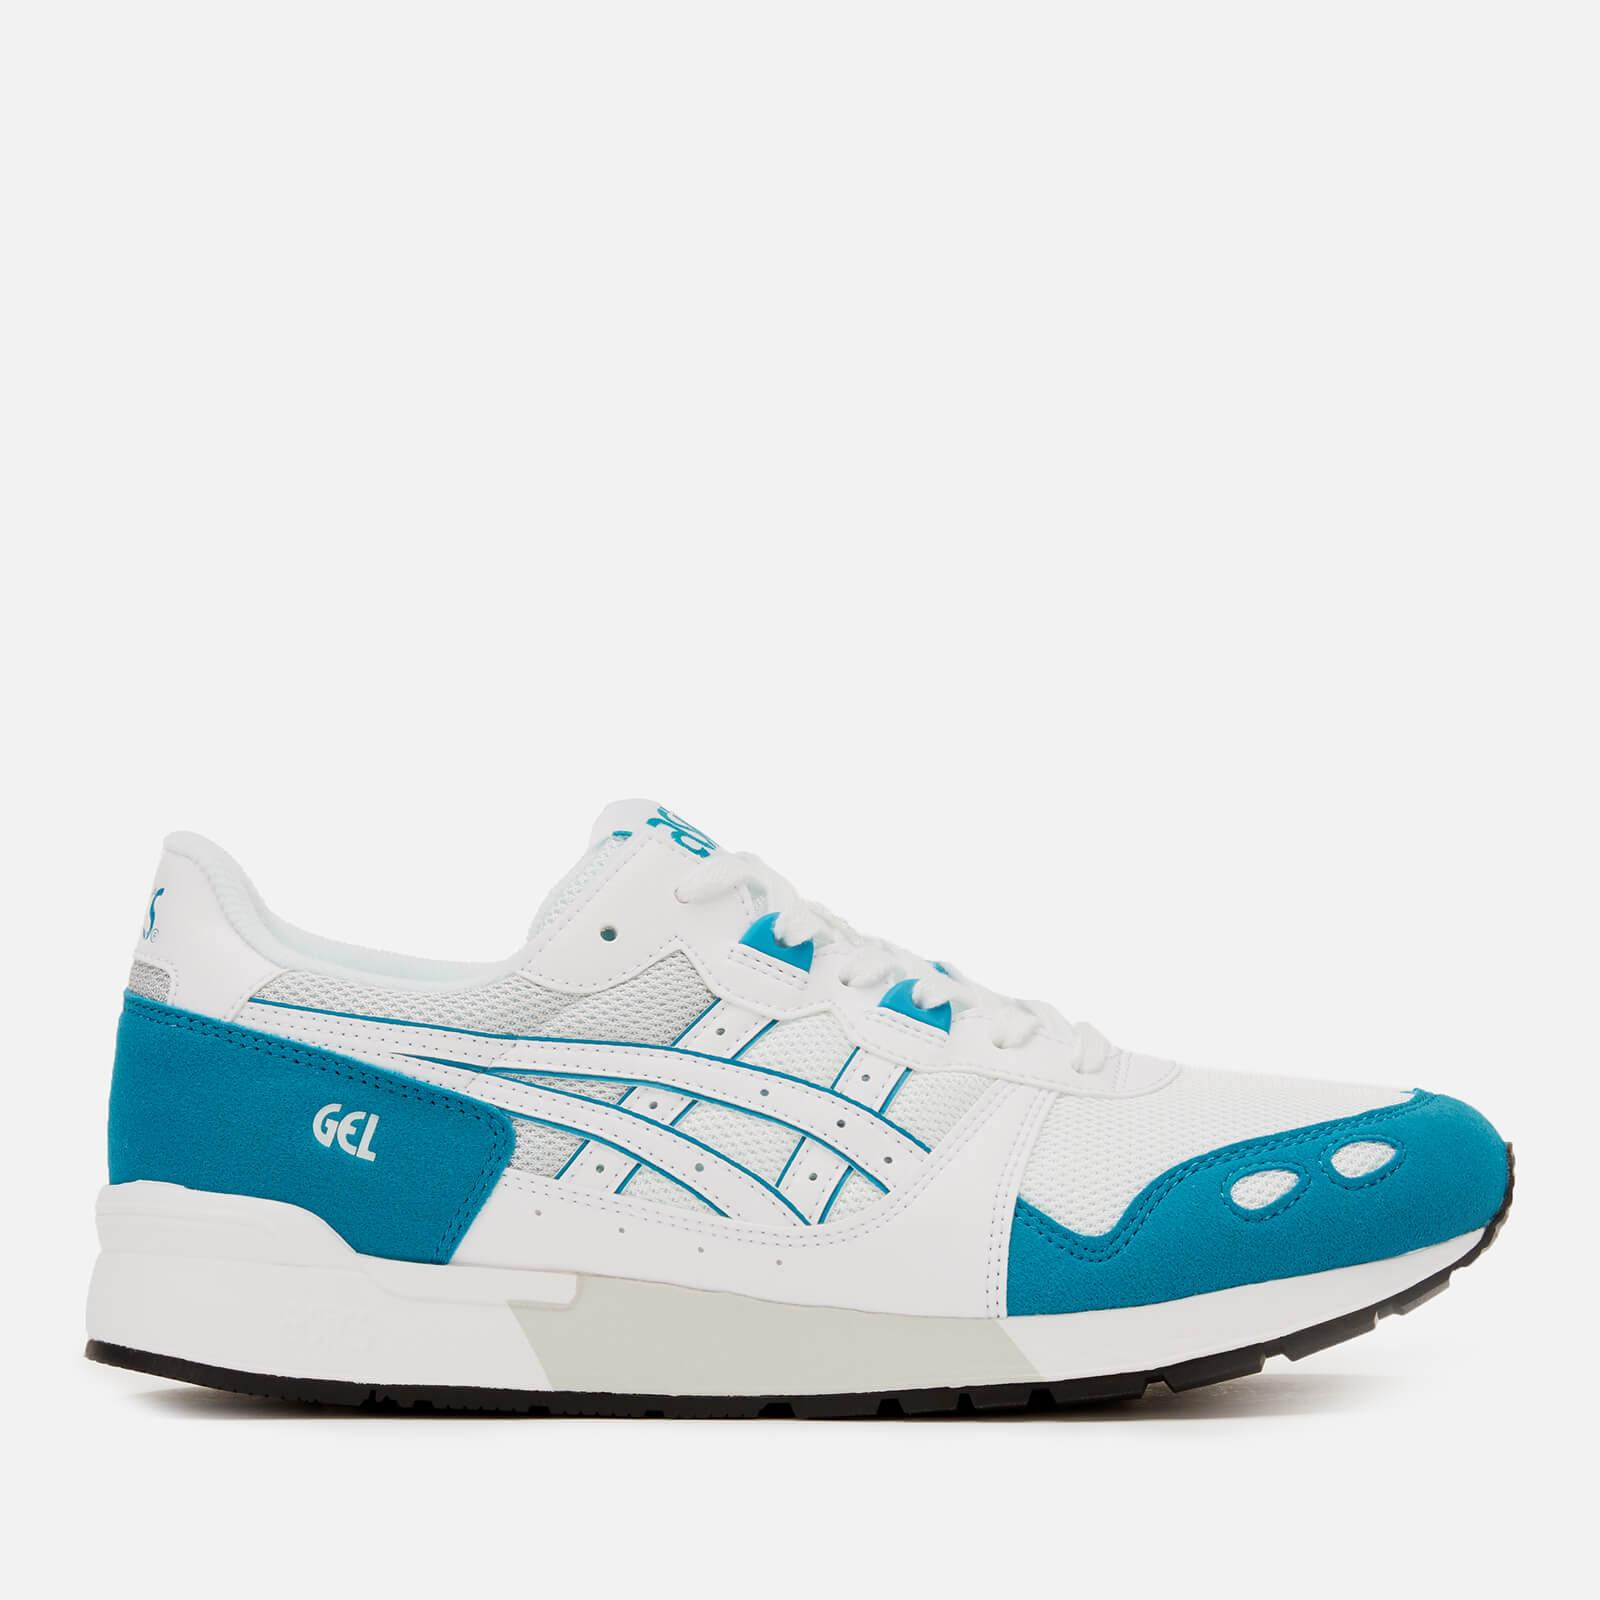 7c857031 Lyst - Asics Lifestyle Gel-lyte Trainers in Blue for Men